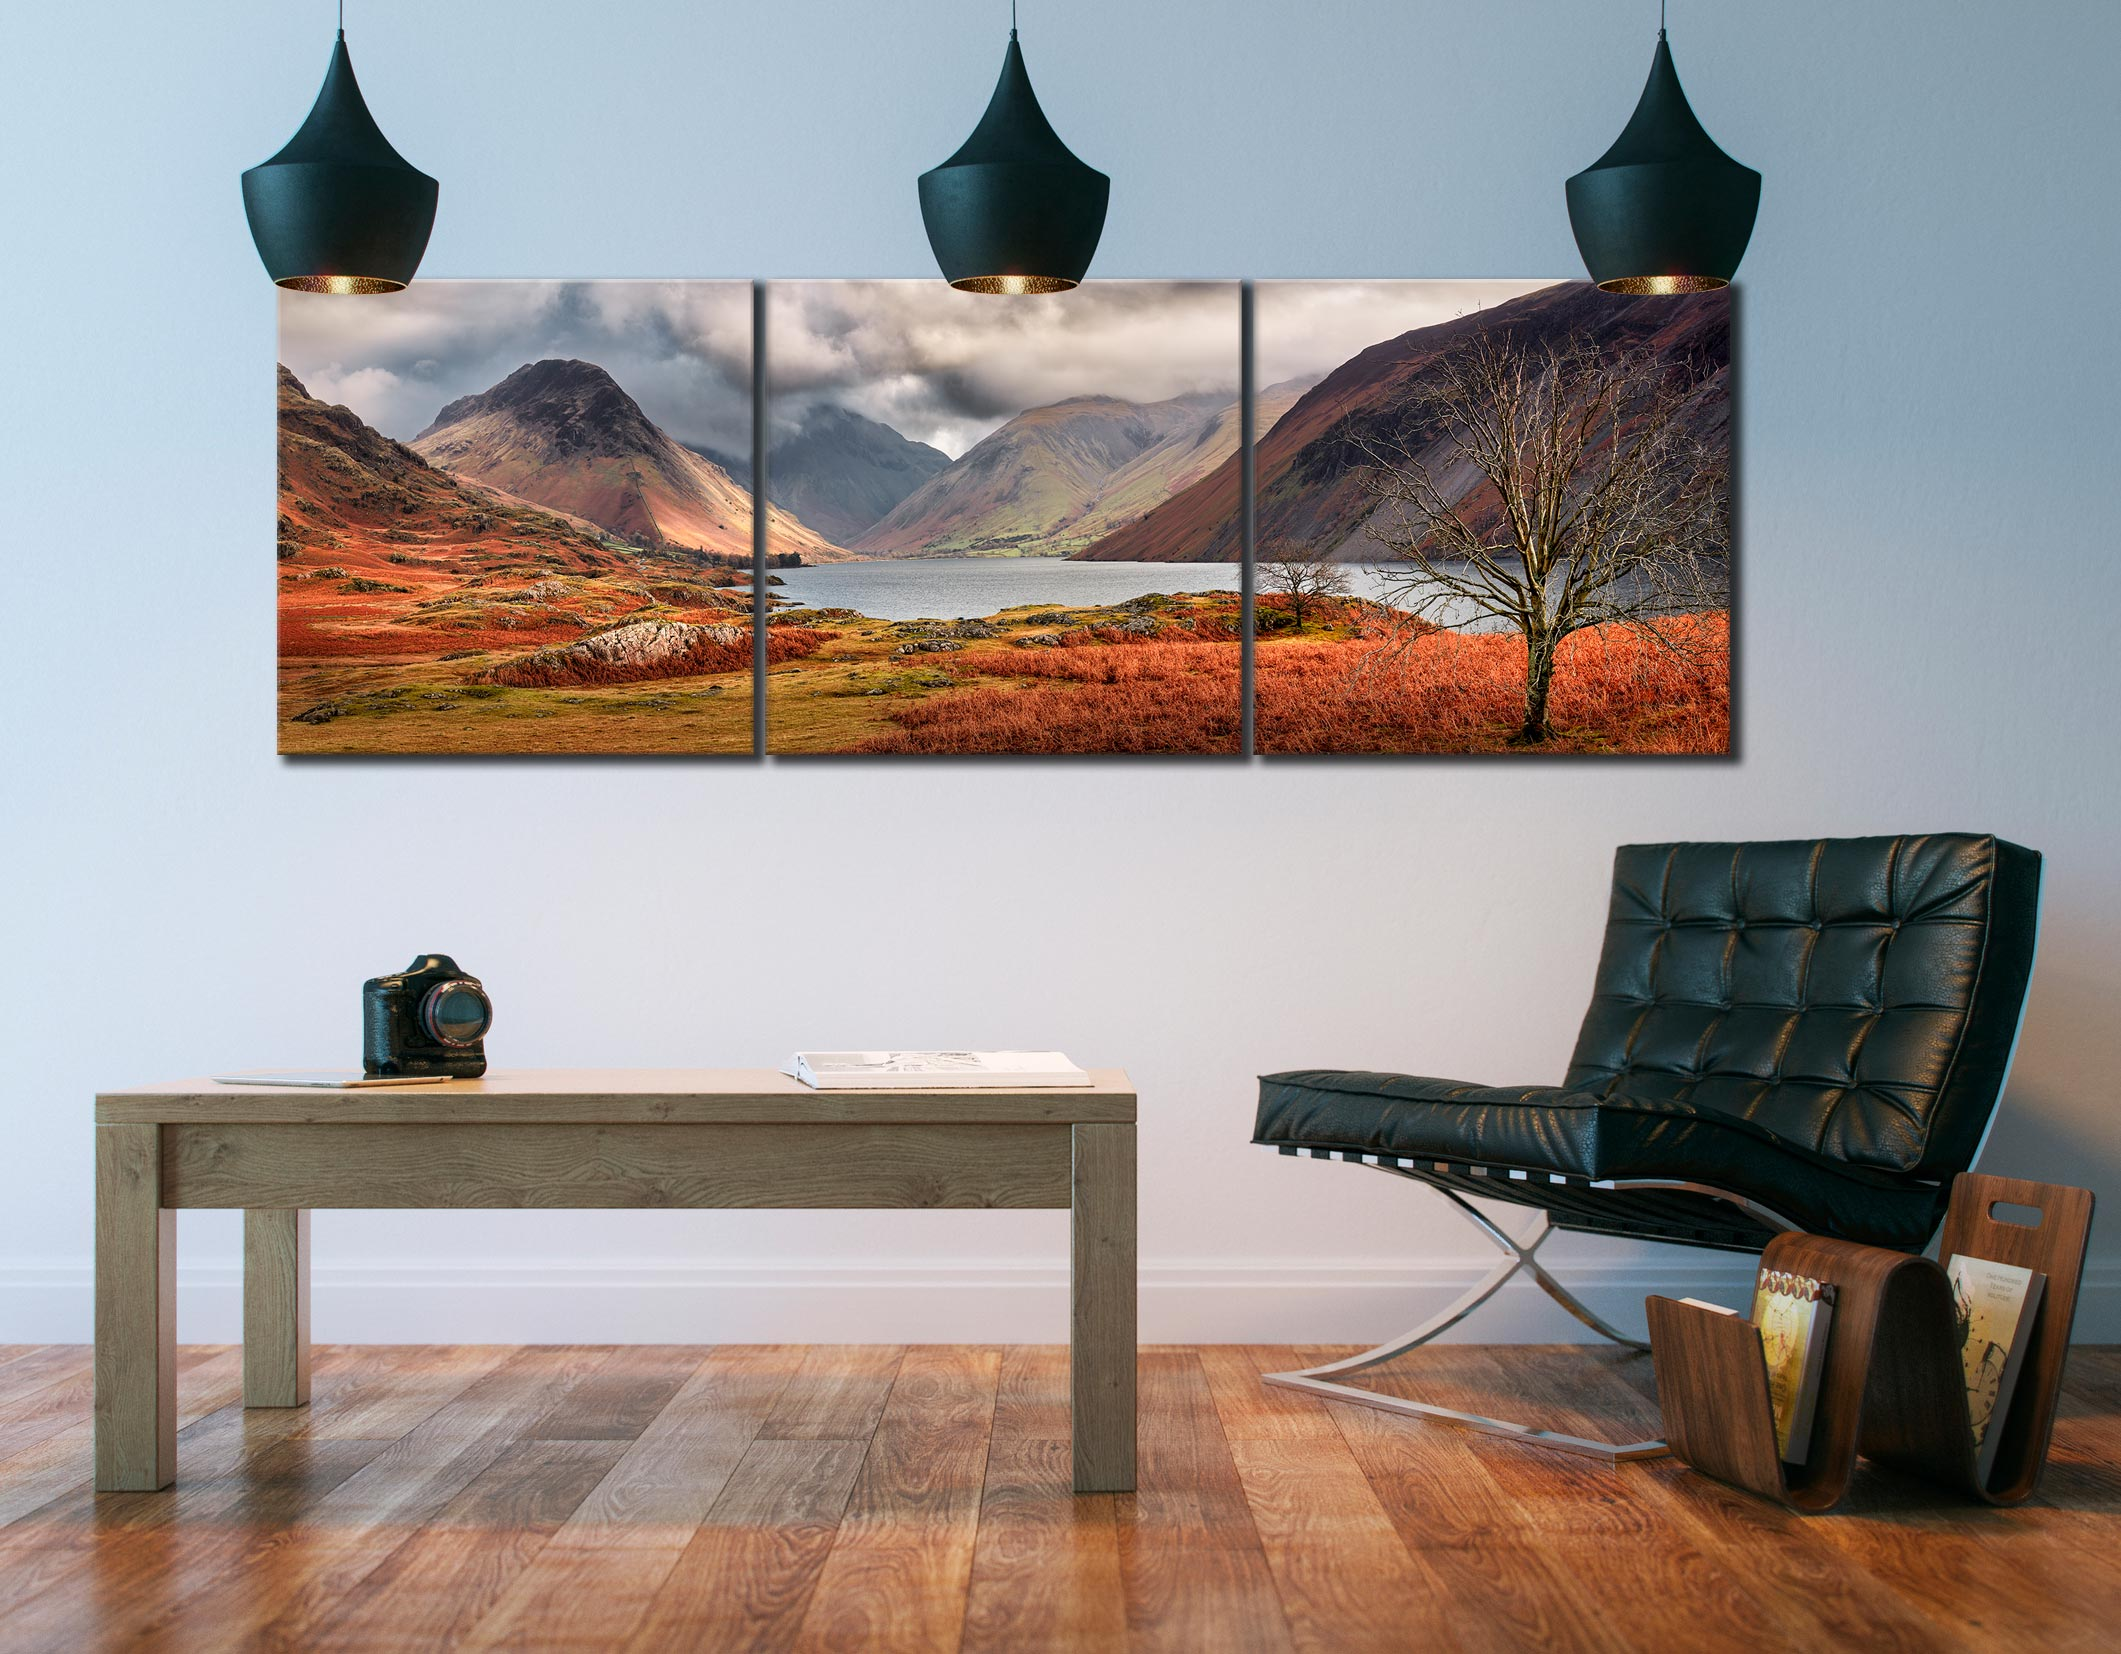 Autumn Ends at Wast Water - 3 Panel Canvas on Wall